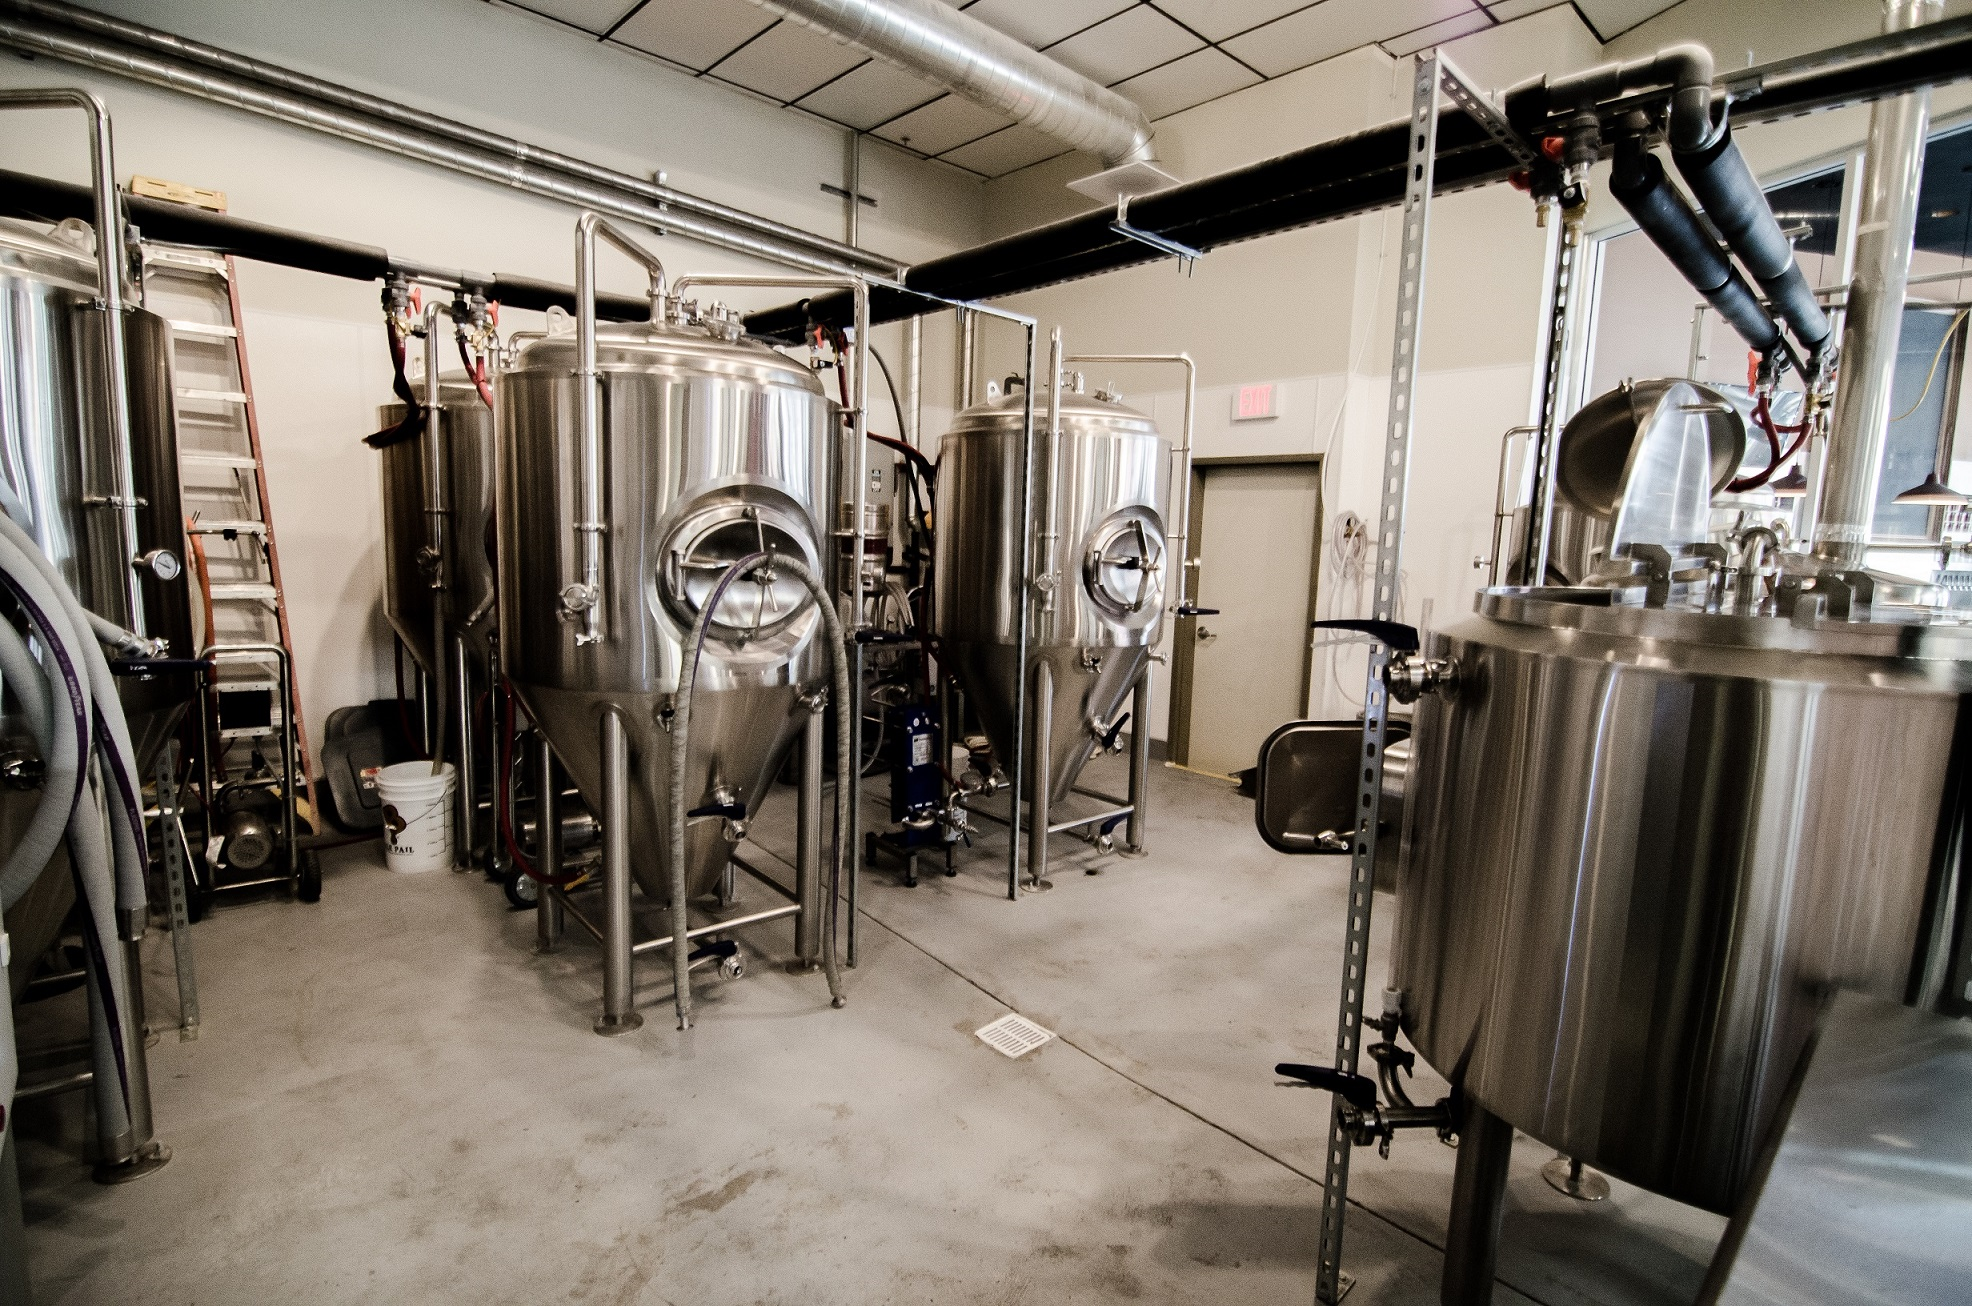 This is the exciting world of craft brewing. It's a banging good time. Photo courtesy of Banger Brewing.